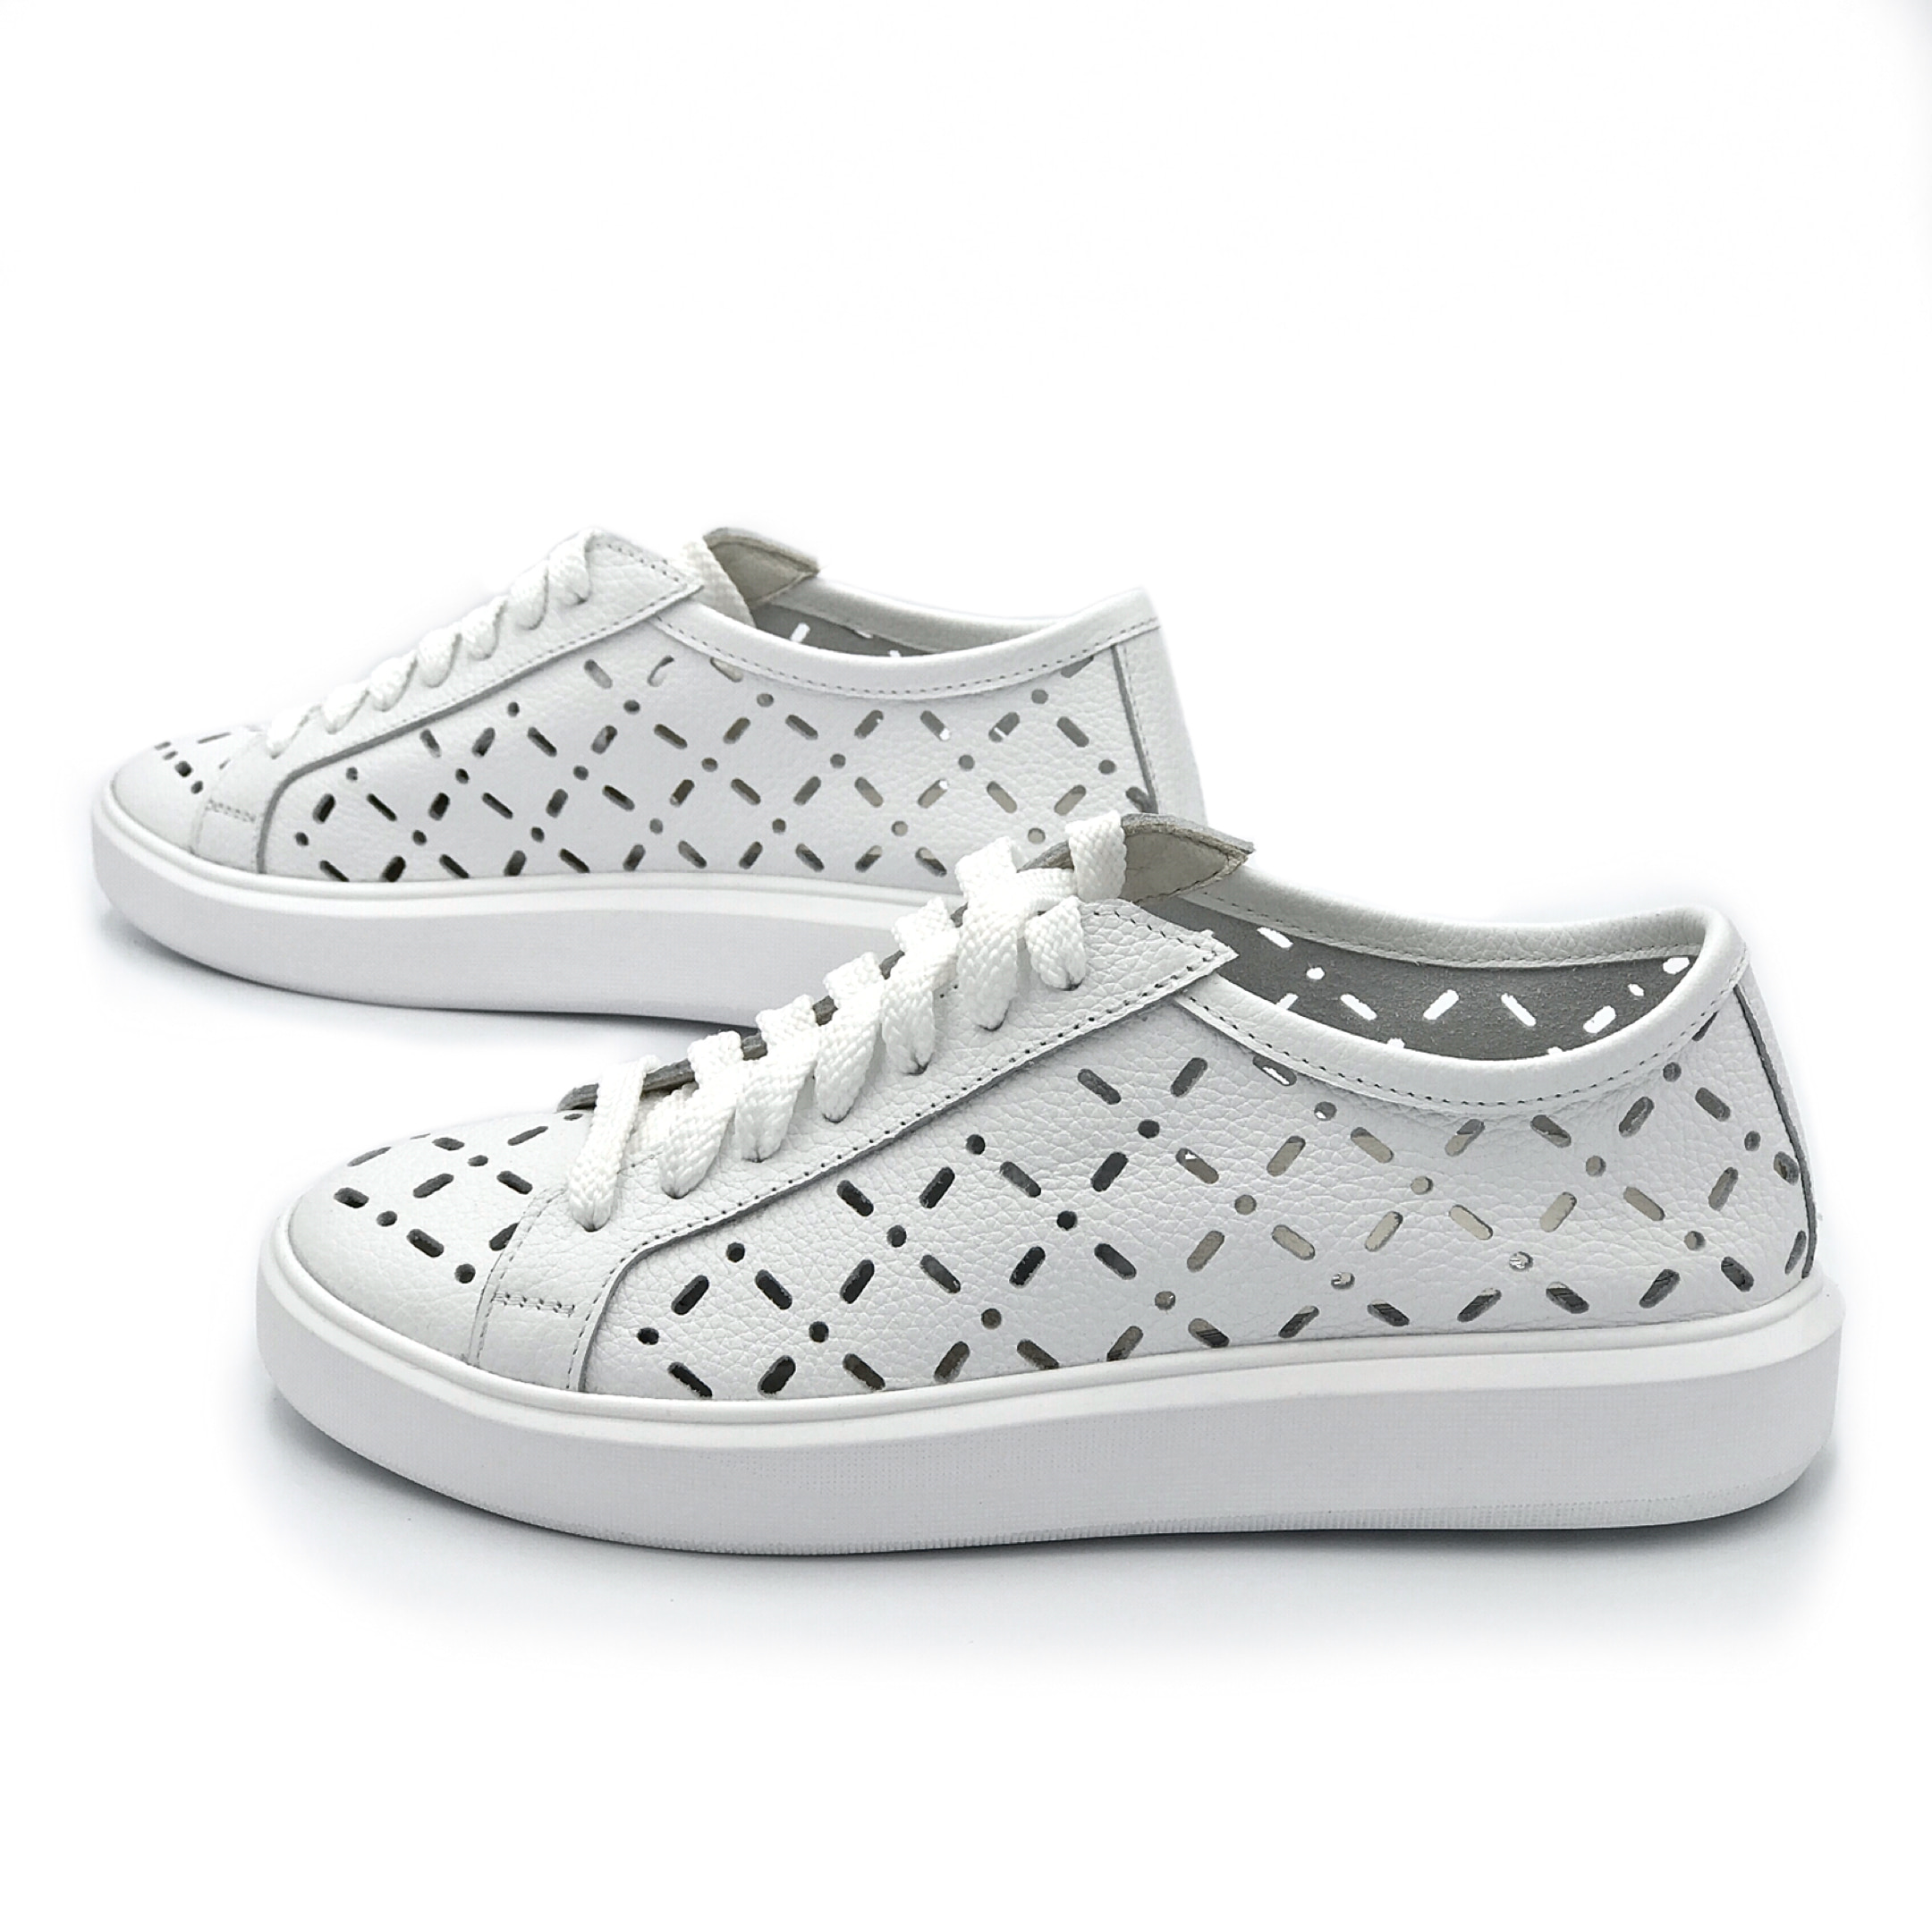 Perforated converse sneakers white 258